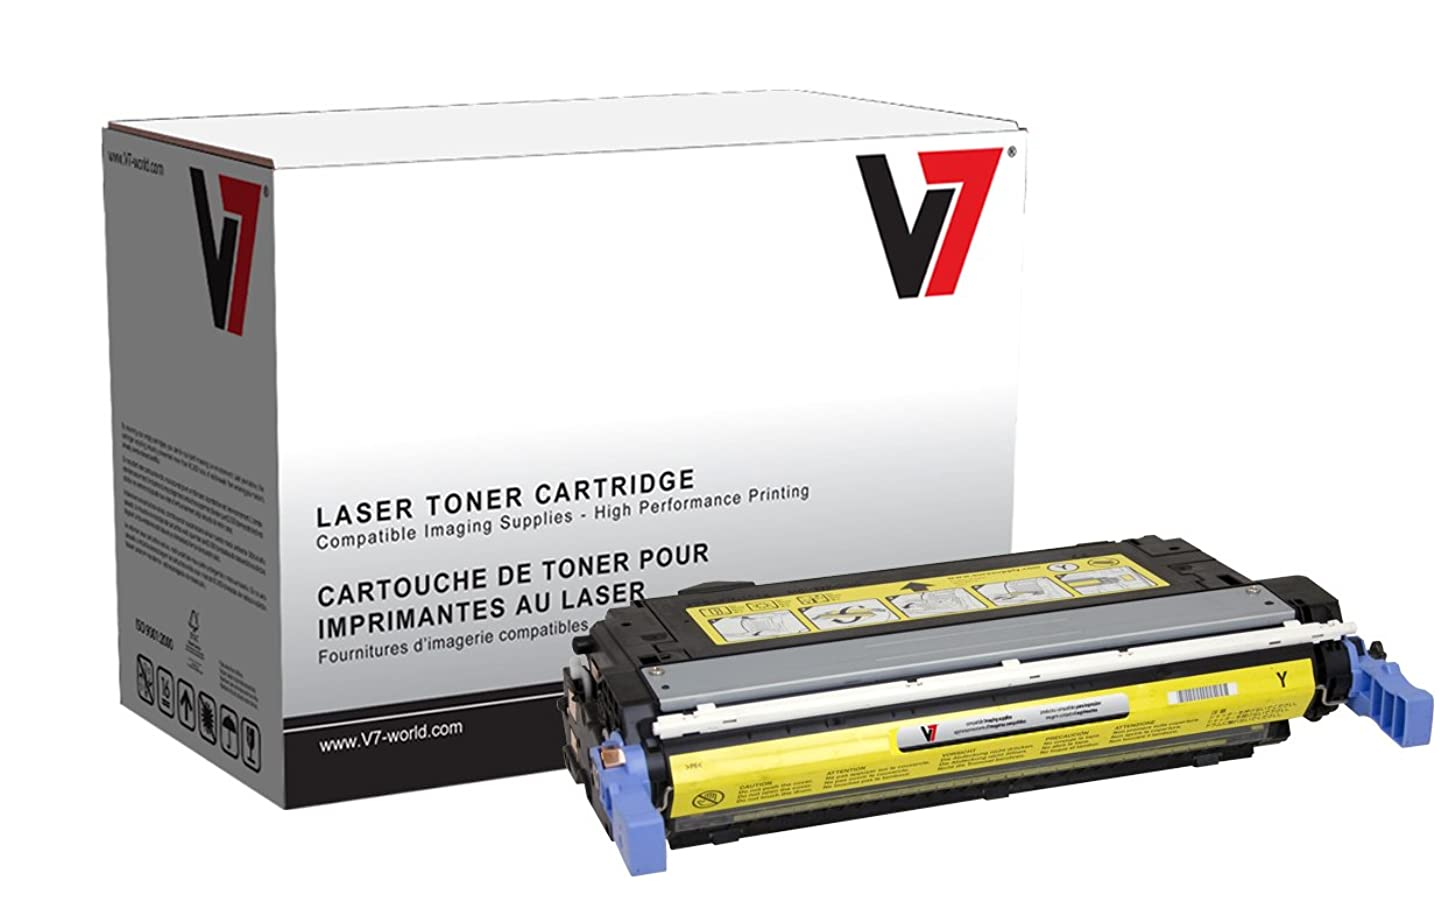 V7 V73800Y Toner Cartridge for HP Printers (Replaces Q7582A, Yield up to 6000 Pages)